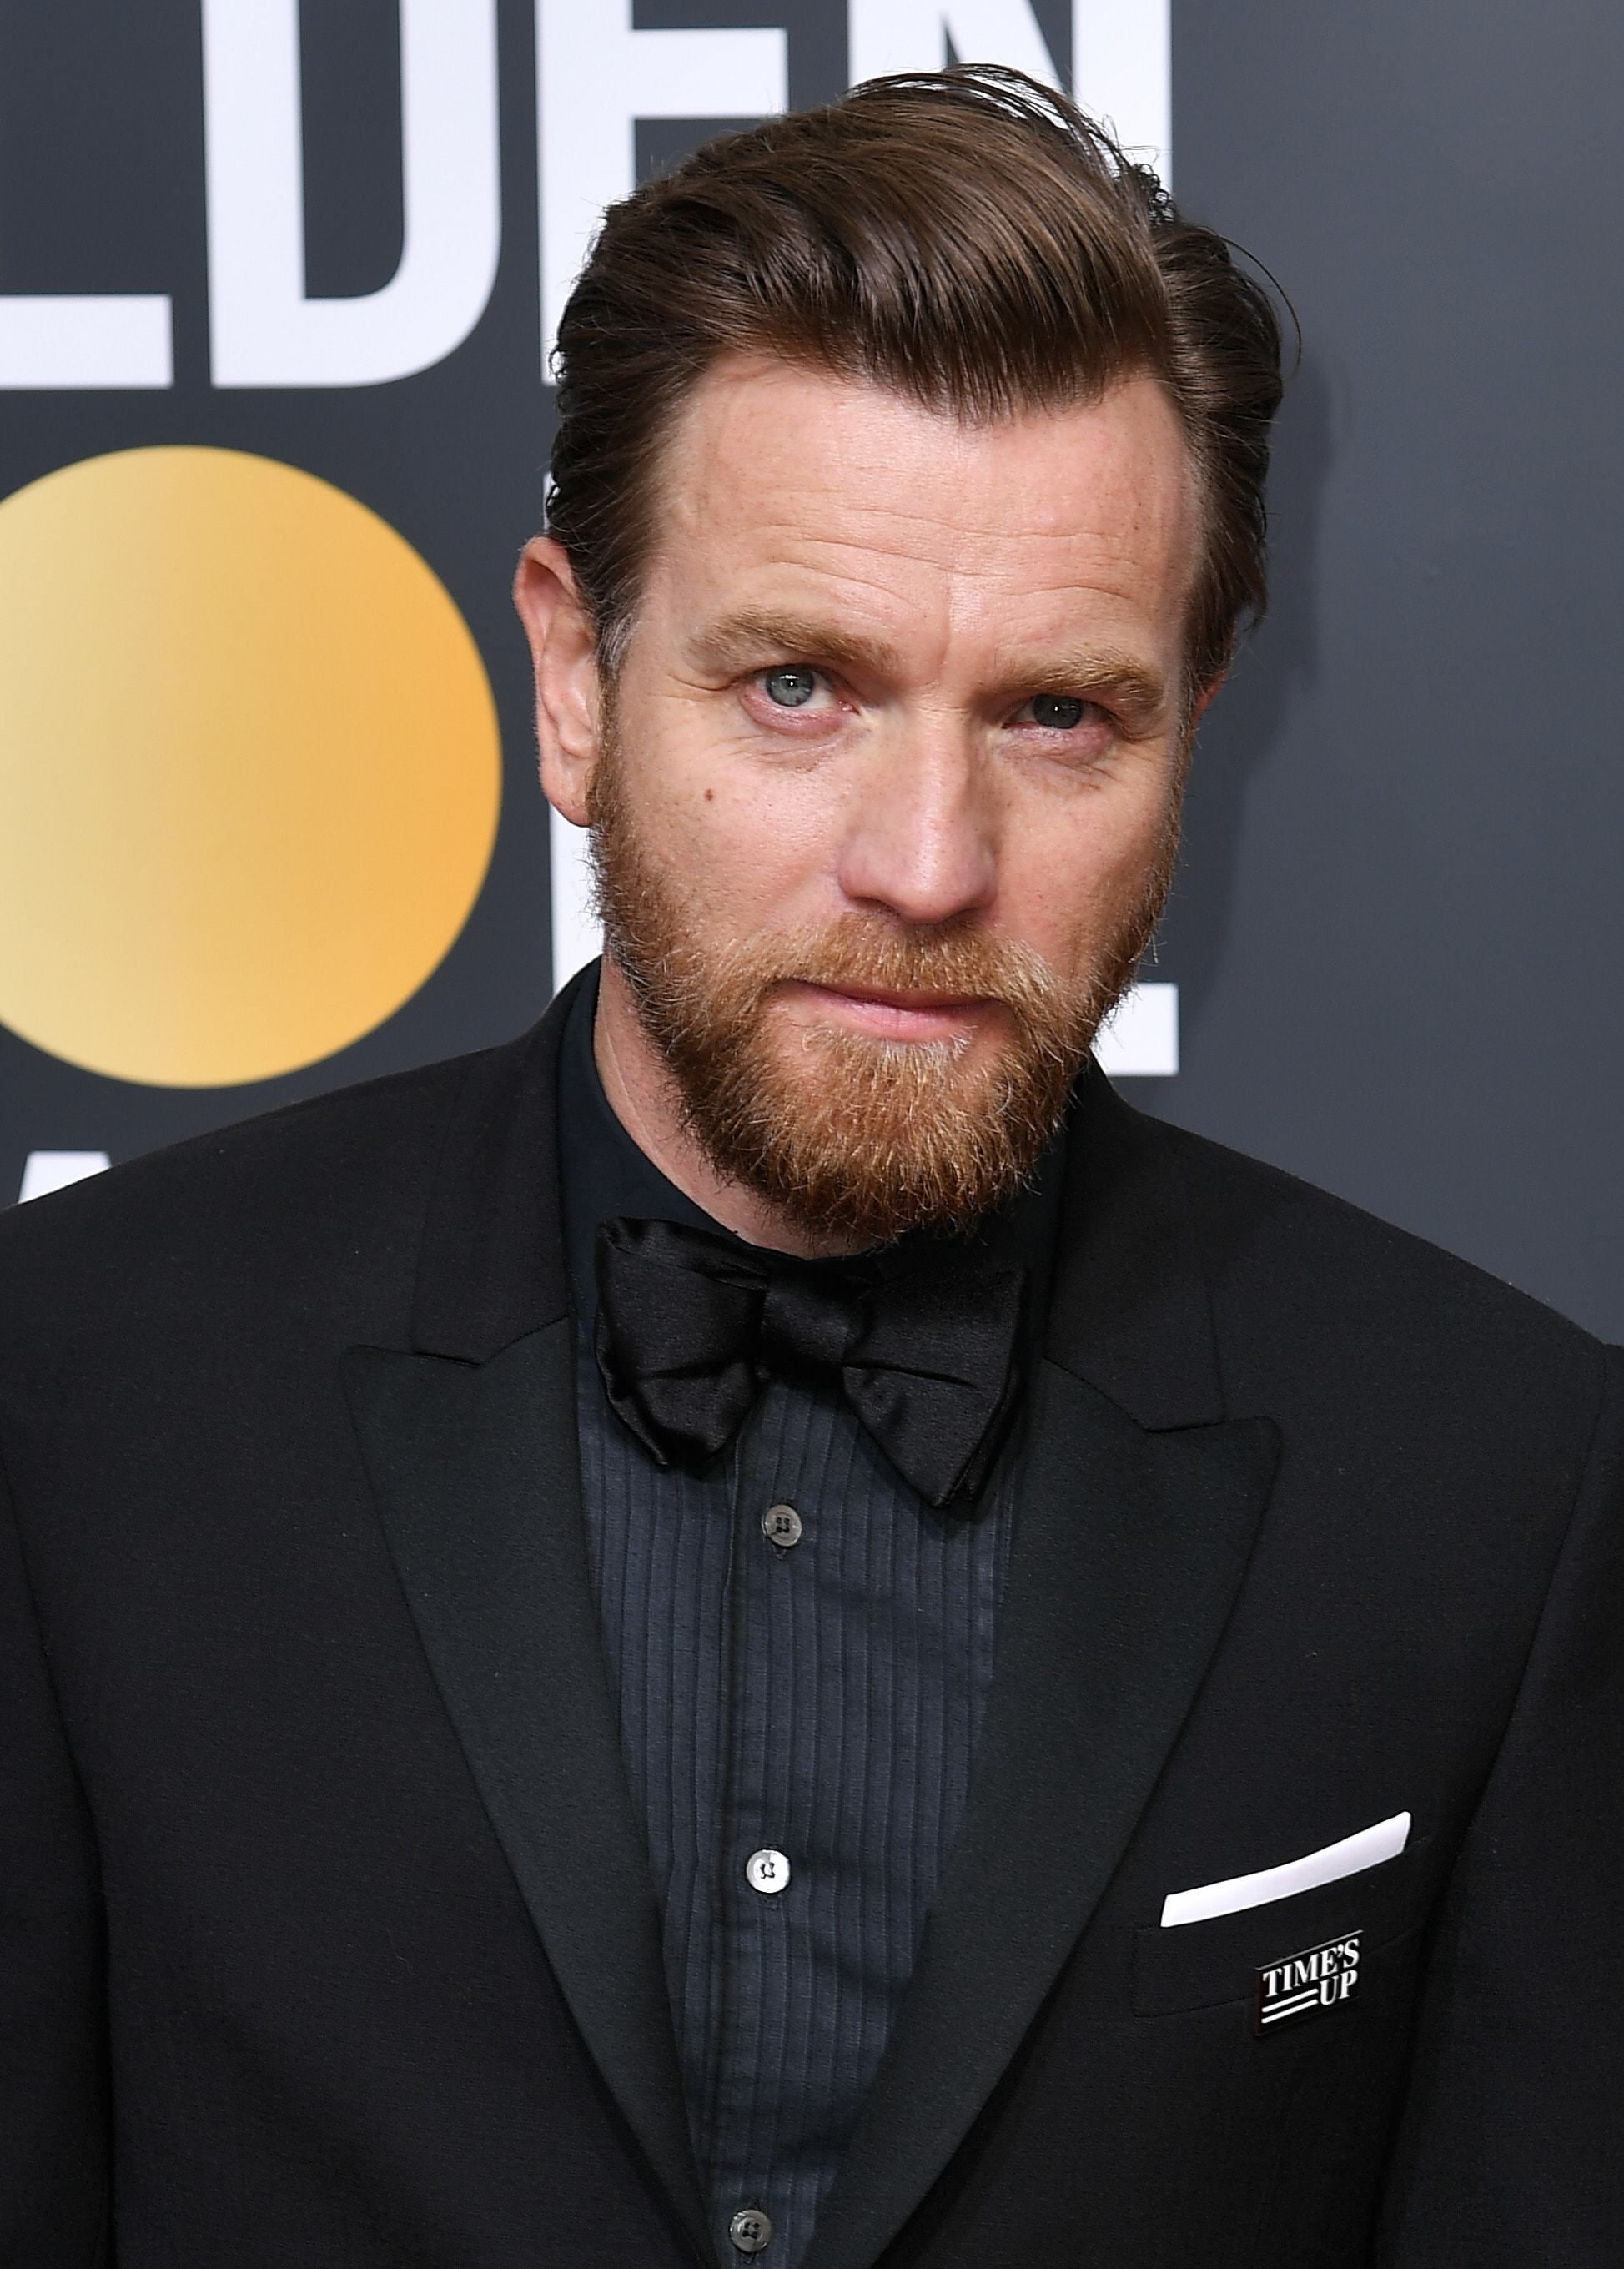 Golden Globes 2018 The Award Winning Mens Hairstyles From The Night